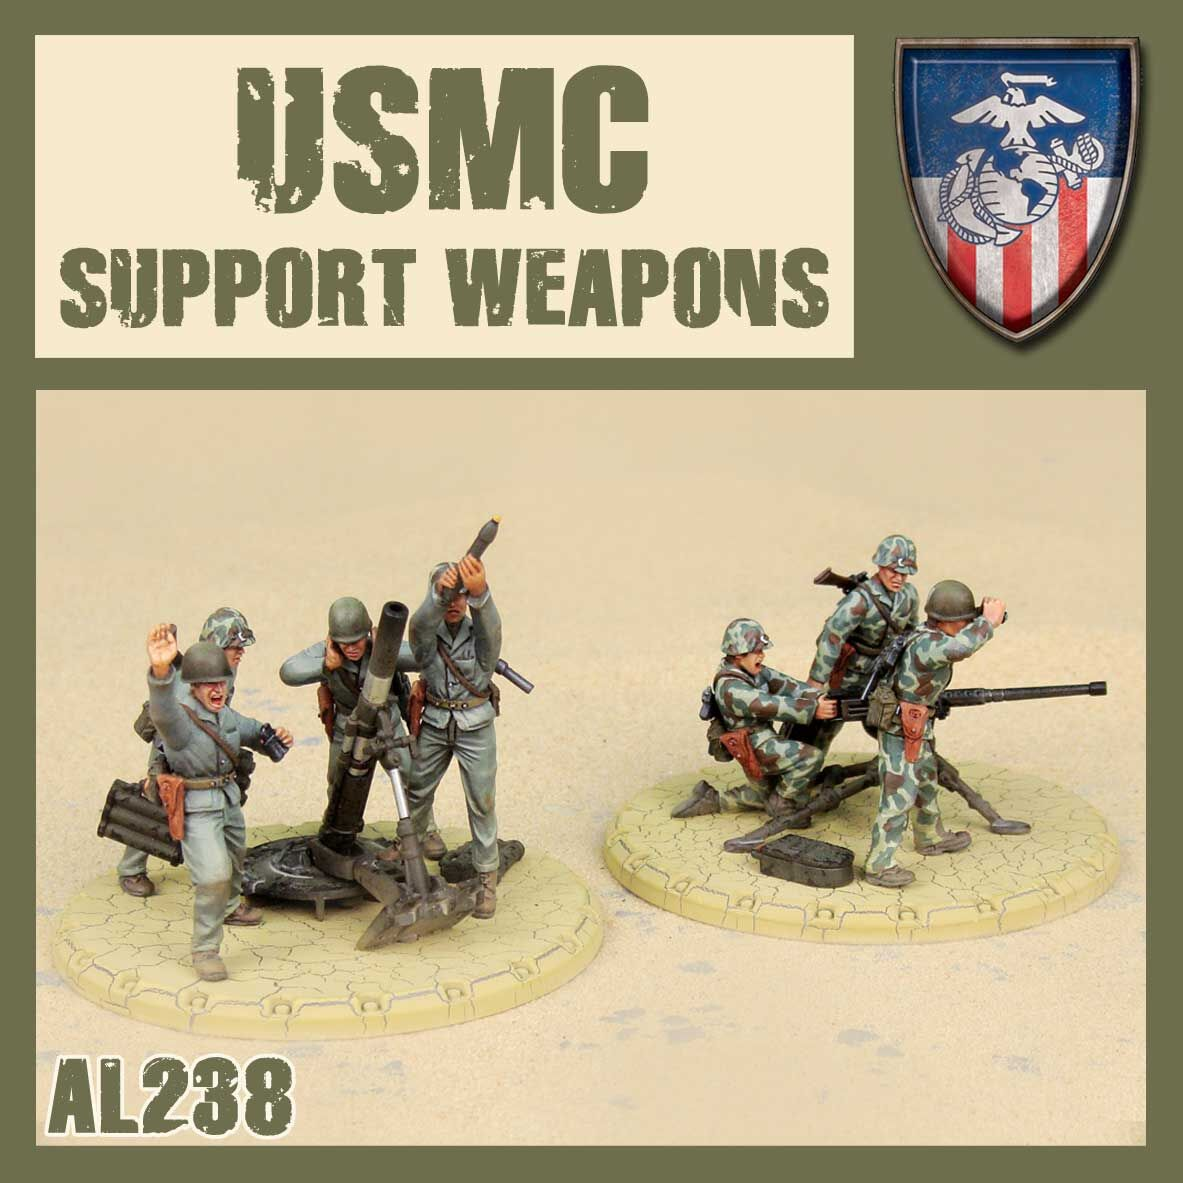 USMC Support Weapons